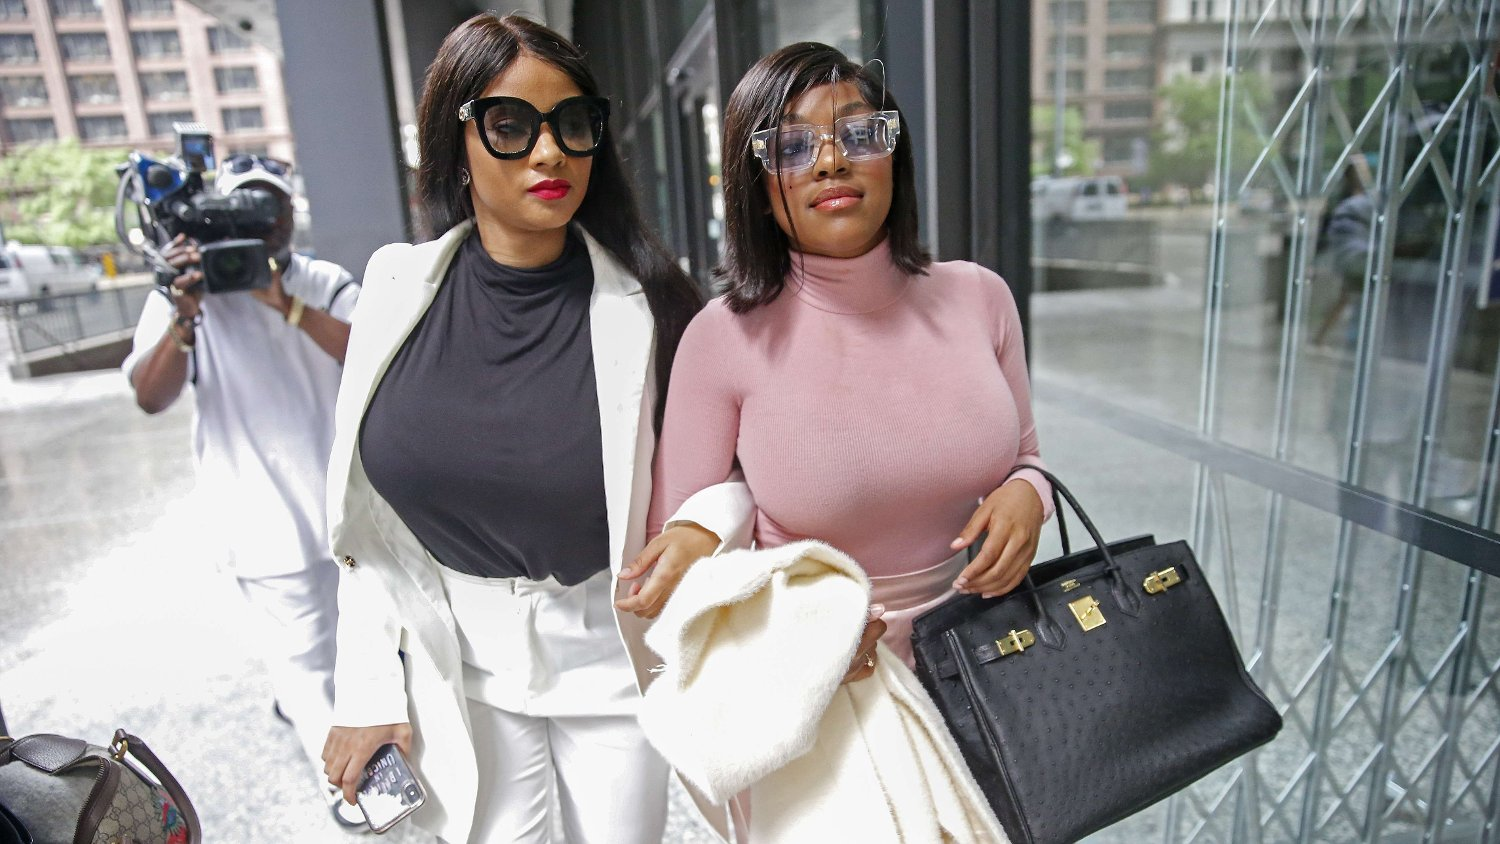 Bond Hearing Held In Chicago For R. Kelly's Federal Criminal Cases CHICAGO, ILLINOIS - JULY 16: Supporters of singer R. Kelly, Azriel Clary and Joycelyn Savage, leave after the singer's arraignment at the Dirksen Federal Building on July 16, 2019 in Chicago, Illinois. Nuccio DiNuzzo/Getty Images/AFP == FOR NEWSPAPERS, INTERNET, TELCOS & TELEVISION USE ONLY ==